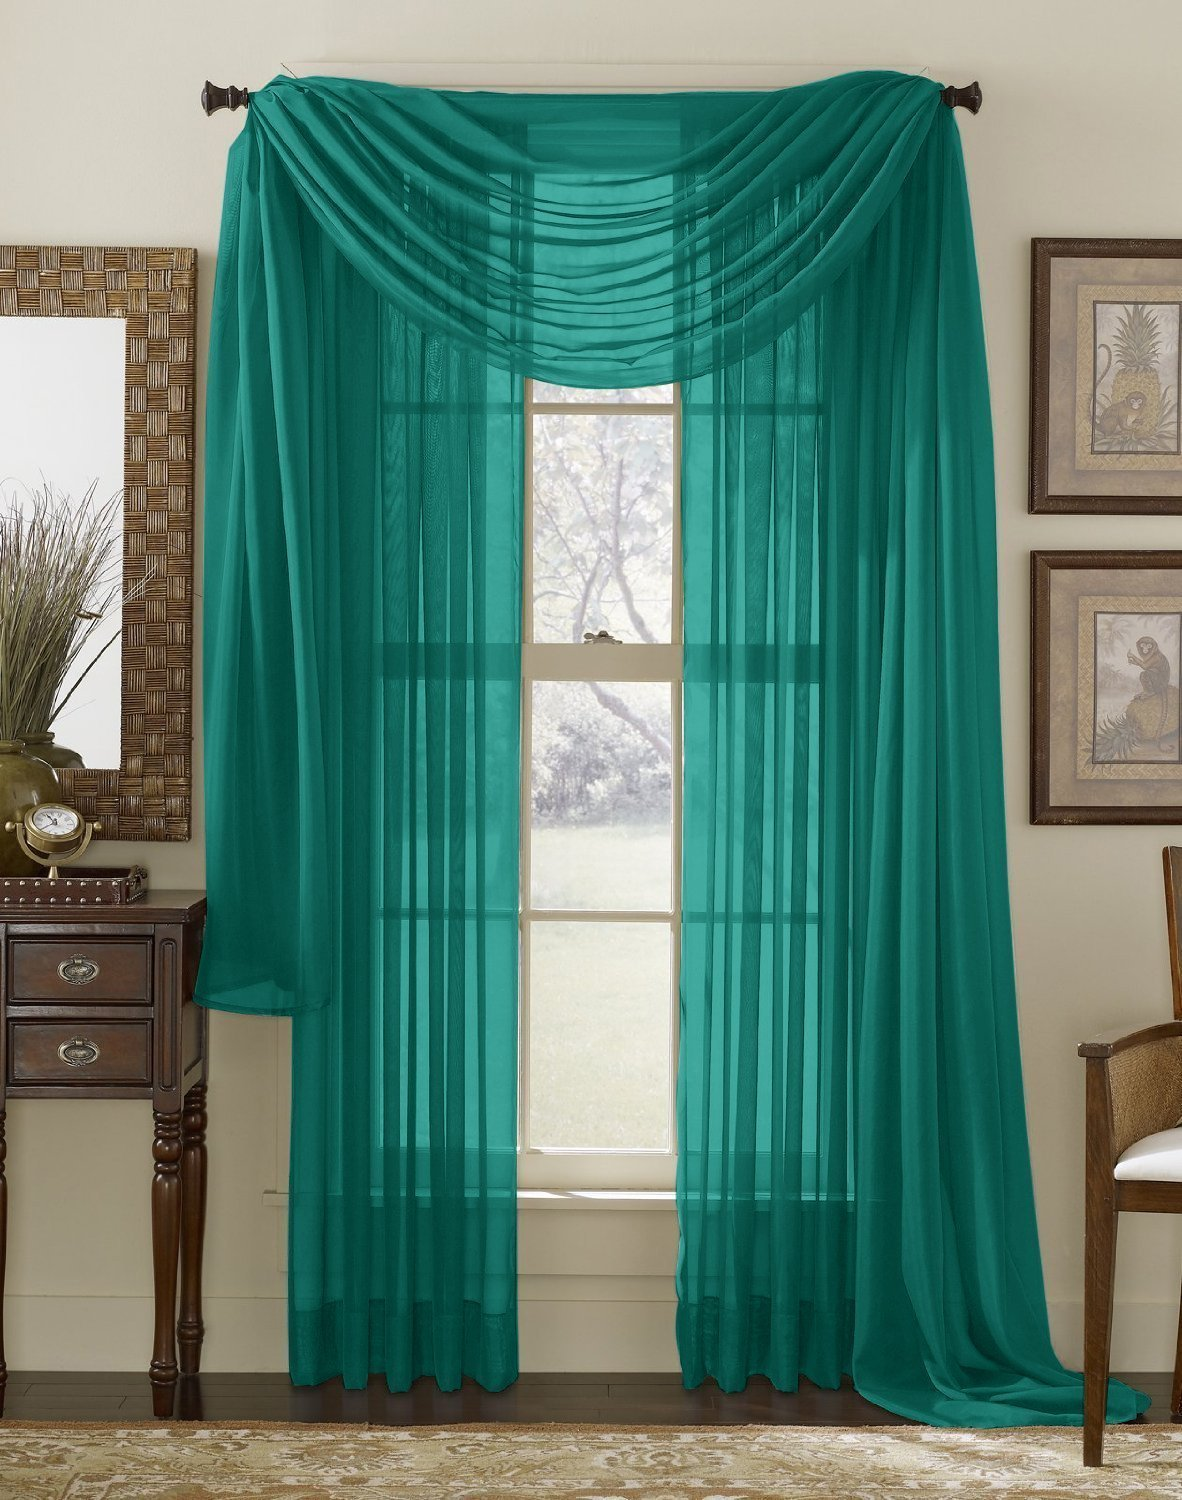 Turquoise sheer curtains - Me Grey Teal 2 Pack 108 Inch X 84 Inch Window Curtain Sheer Panels